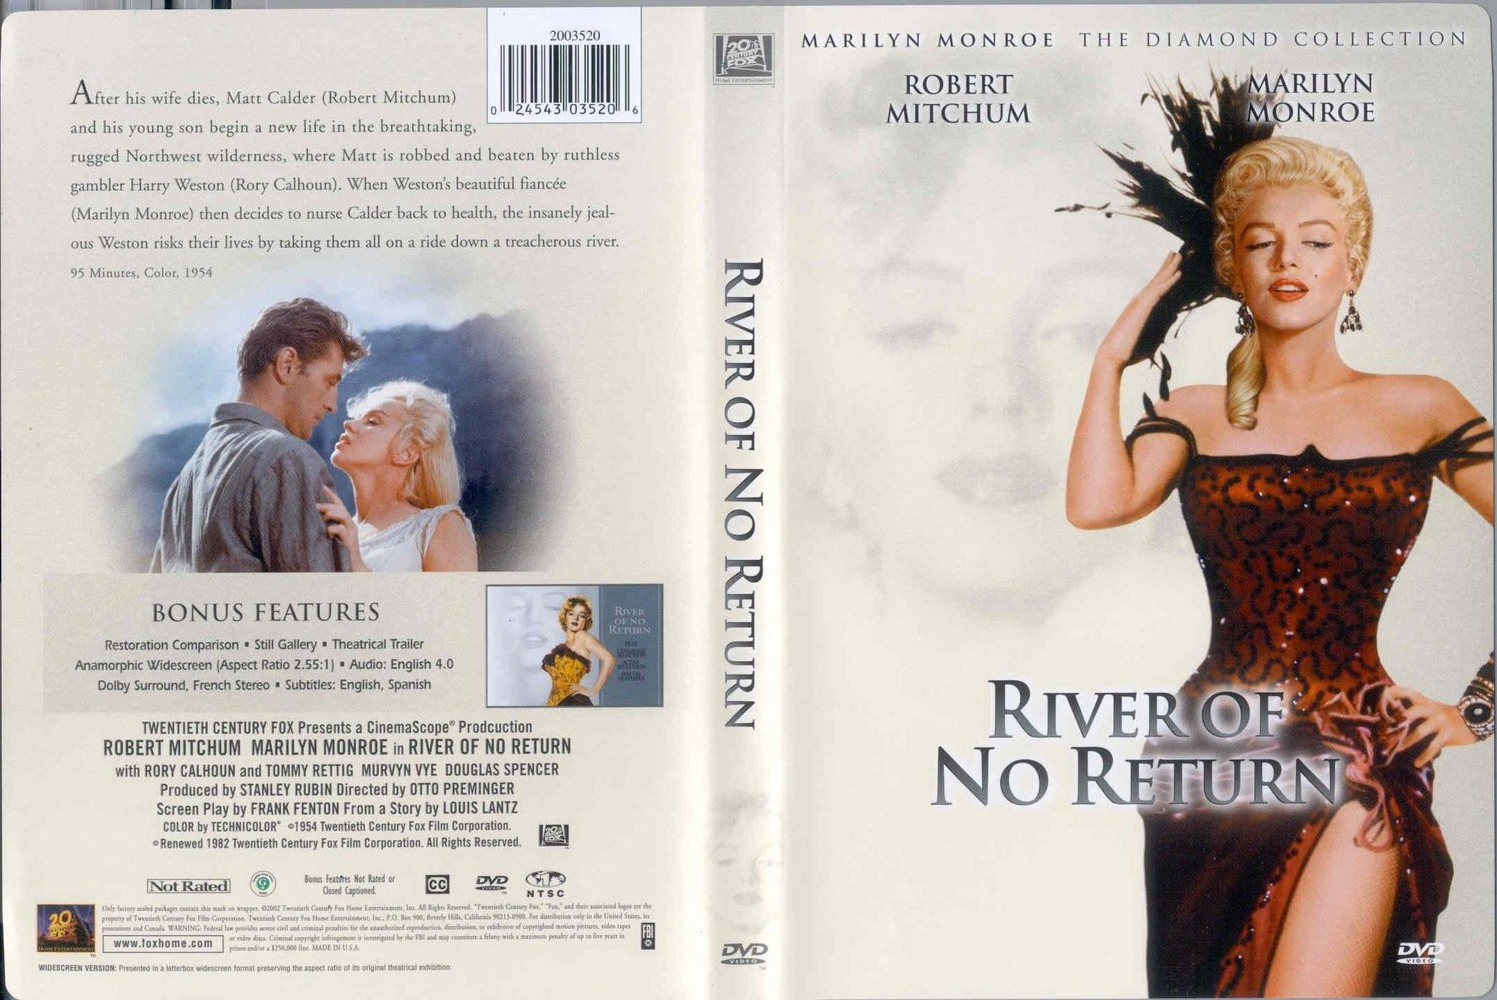 No deposit no return dvd is chess a gambling game